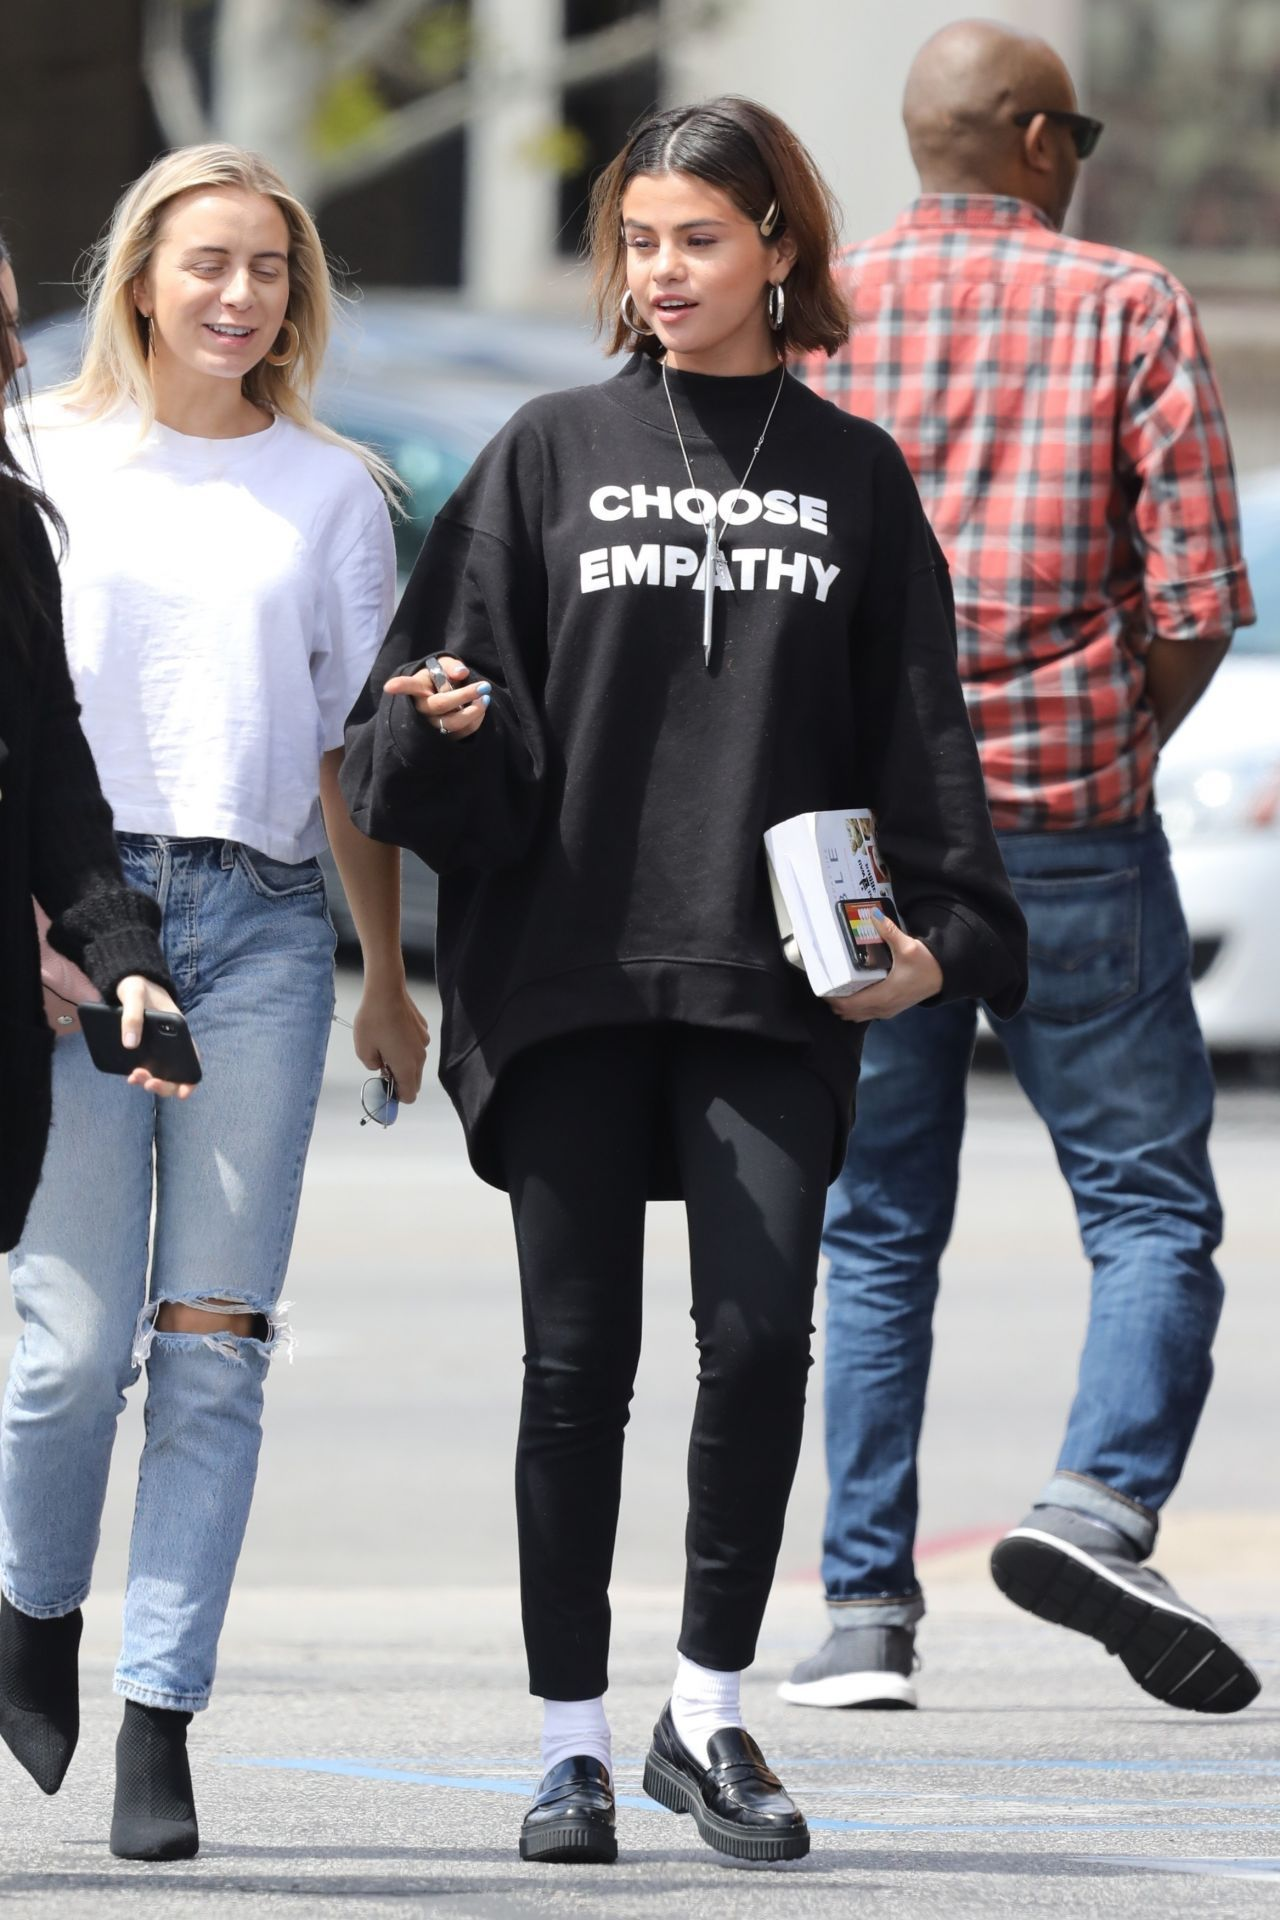 Selena gomez out for lunch in studio city 03 25 2018 for Mode bekleidung schule frankfurt